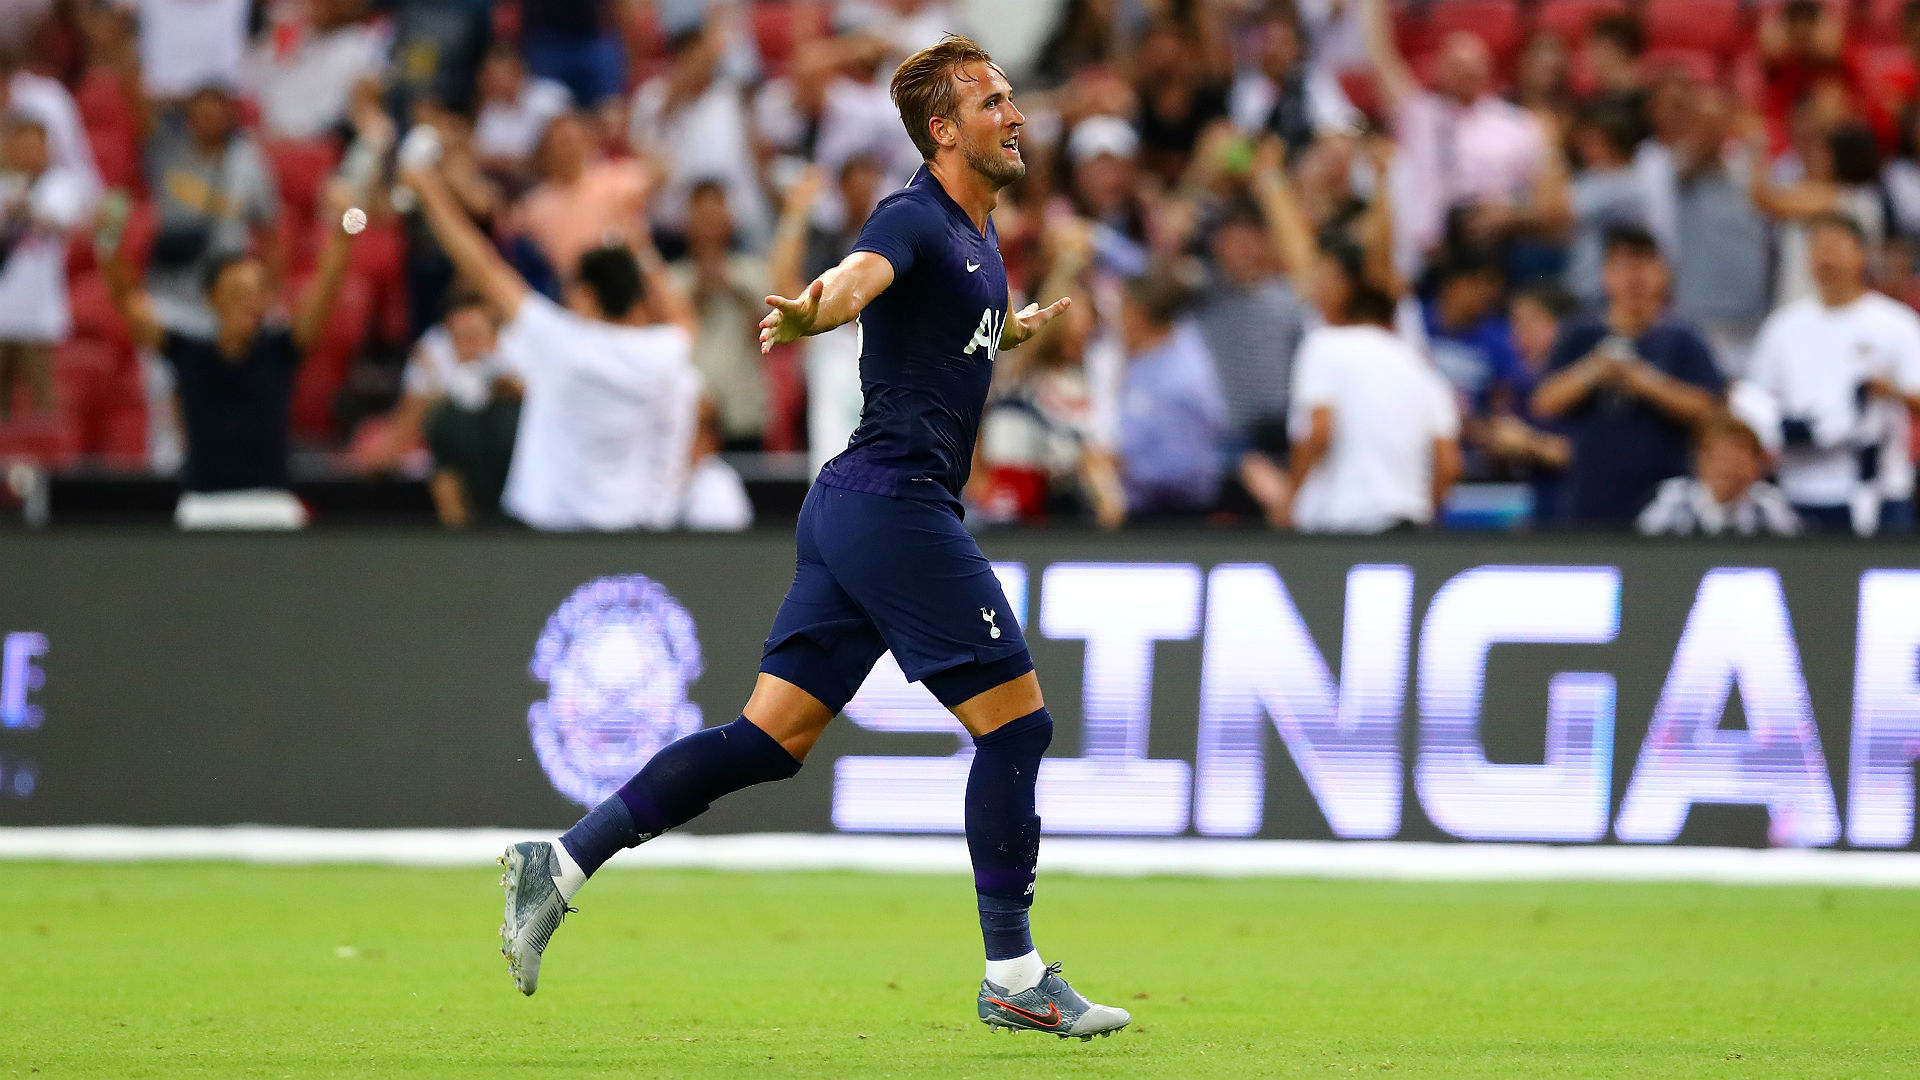 Harry Kane scored a stunner from midfield, and Twitter went wild